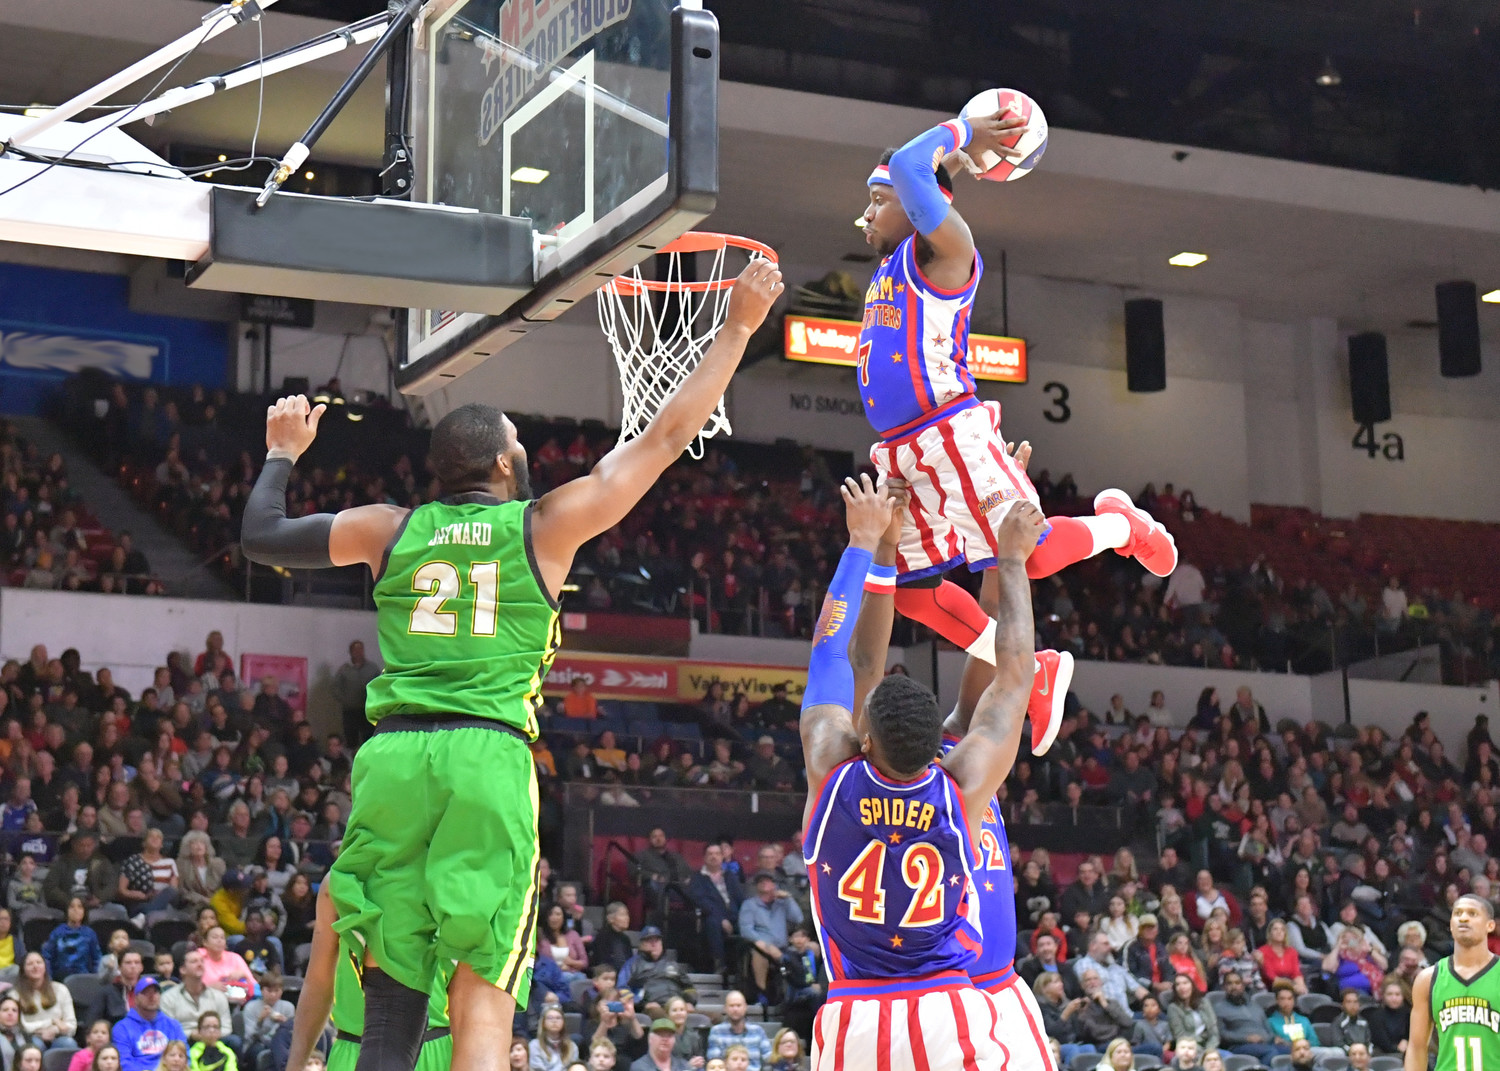 Guard Too Tall Hall has the distinction of being one of the shortest players in Globetrotters history at 5'2''; he continually wows the crowd with his signature moves.